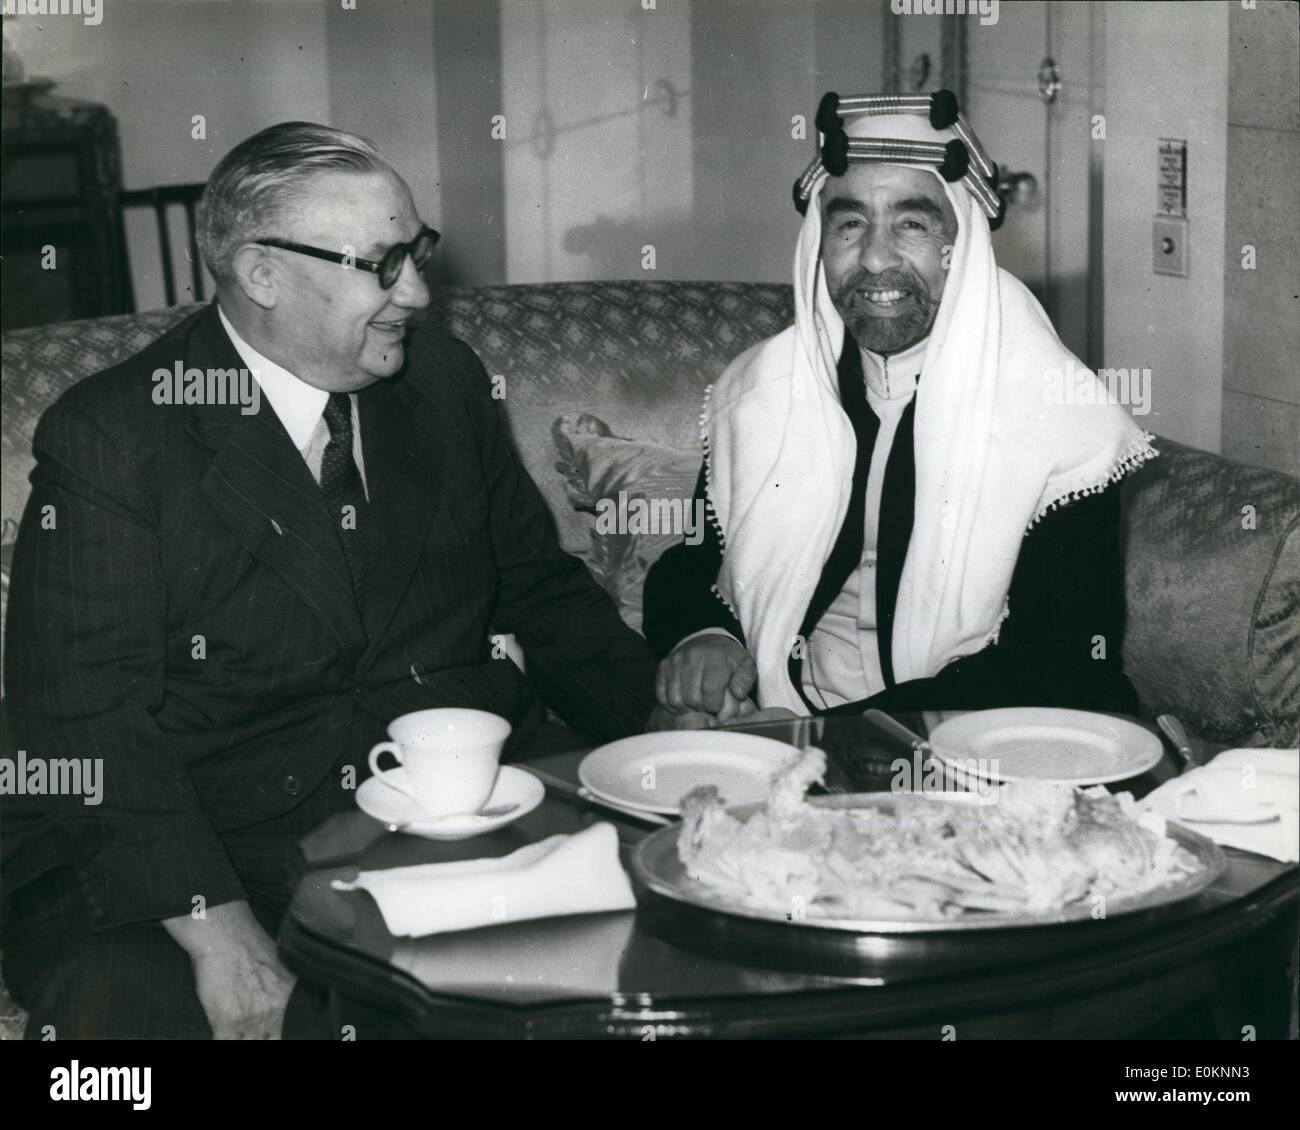 Aug. 08, 1940 - Mr. Bevin Meets King Abdullah Conference At The  park Hotel: Mr. Bevin the Foreign Minister King Abdullah of Jordan had a conference at the Park hotel, this evening. Photo Shows King Abdullah and Mr. Bevin  happy mood during their meeting at the hotel this evening. - Stock Image